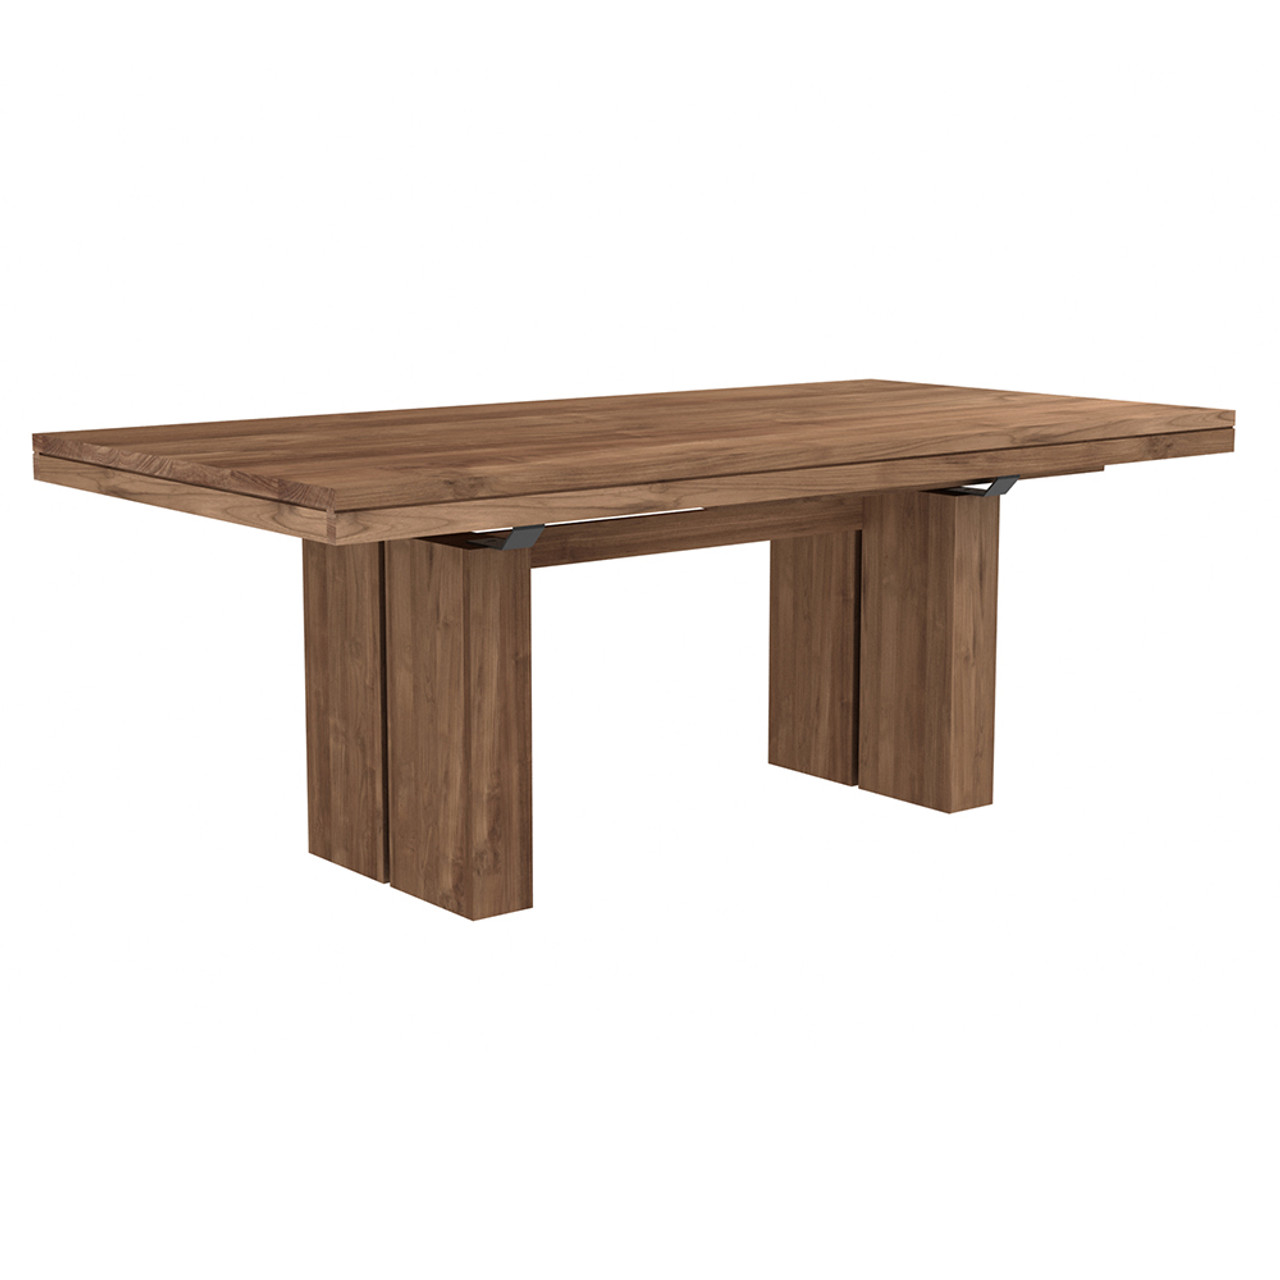 Flex Double Extension Dining Table -  Oak or Teak